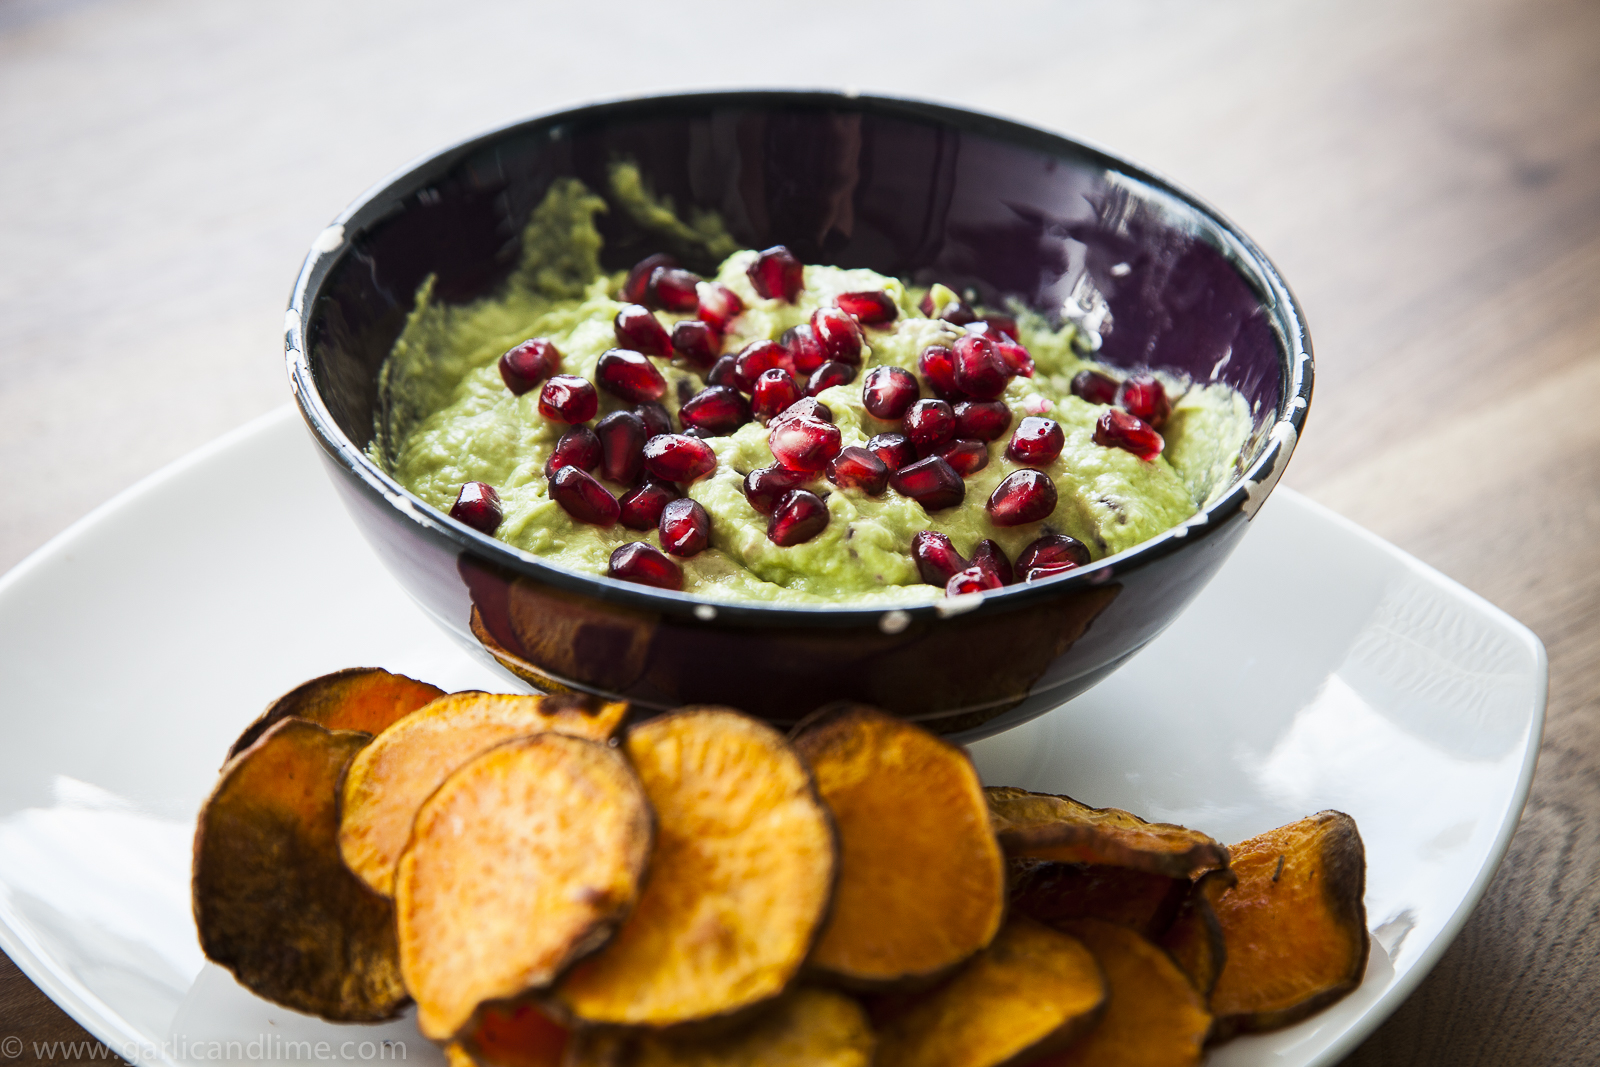 Avocado Tahini Dip with Pomegranate Seeds